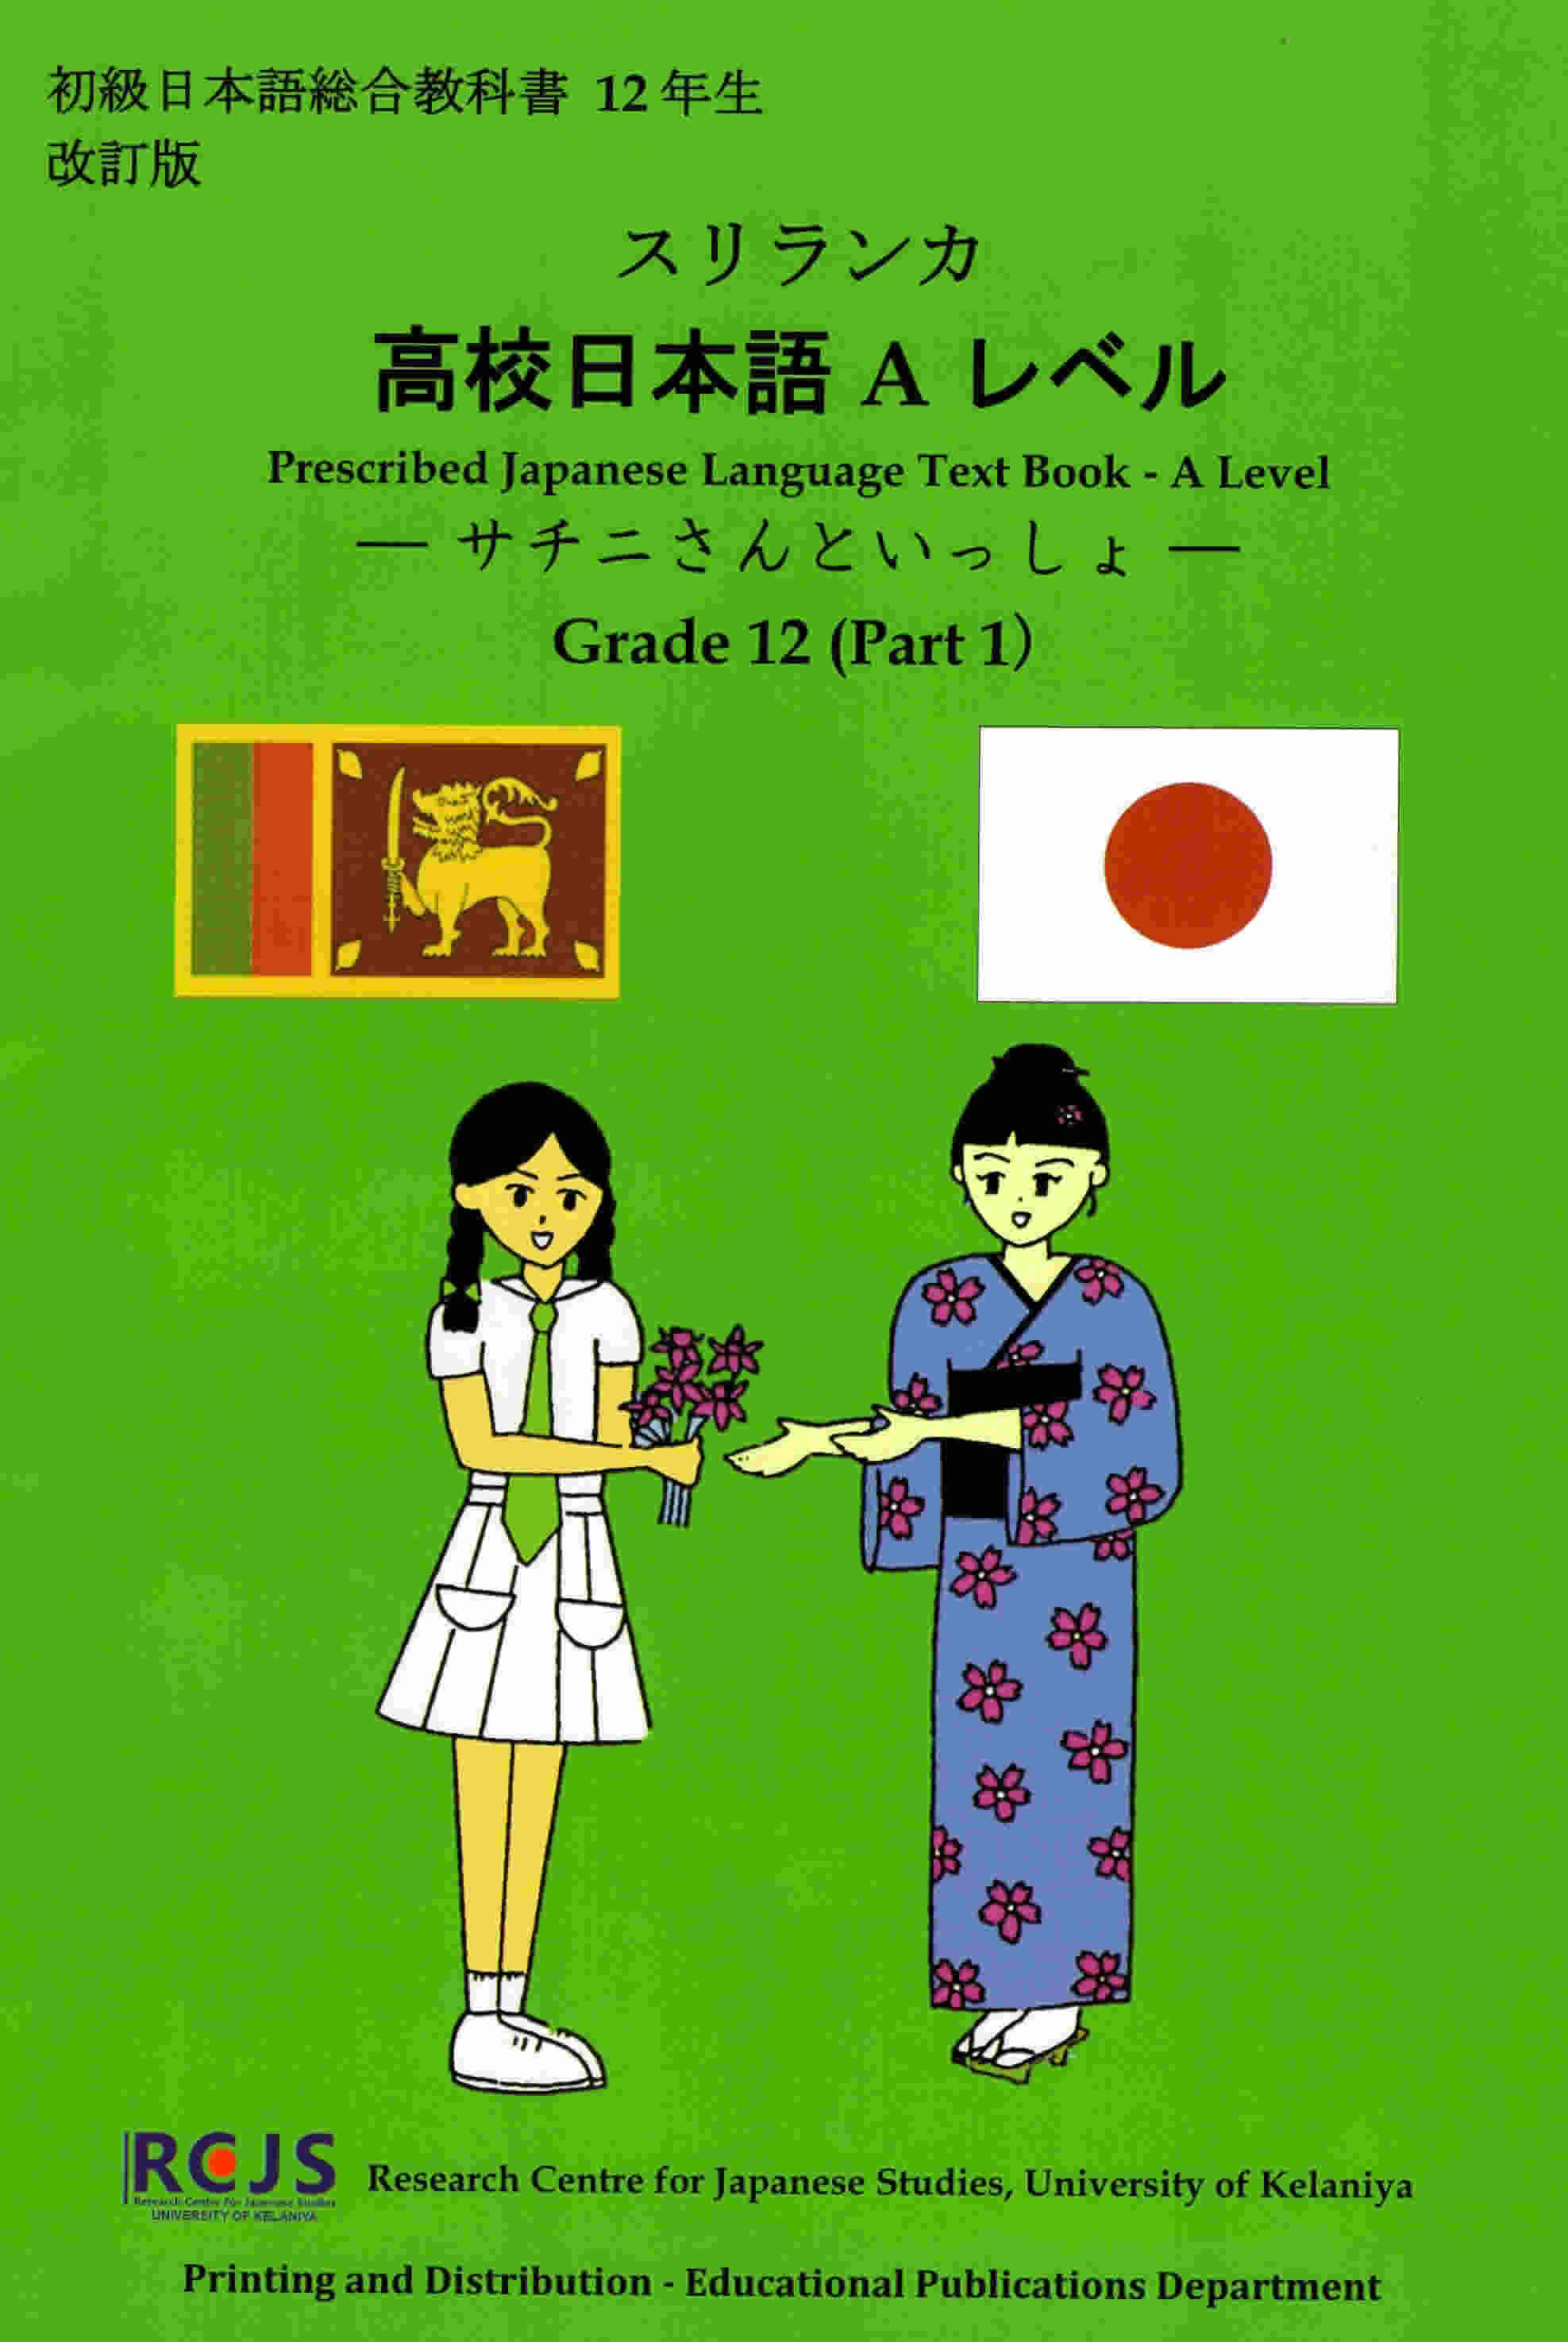 Prescibed Japanese Language Text Book - A Level